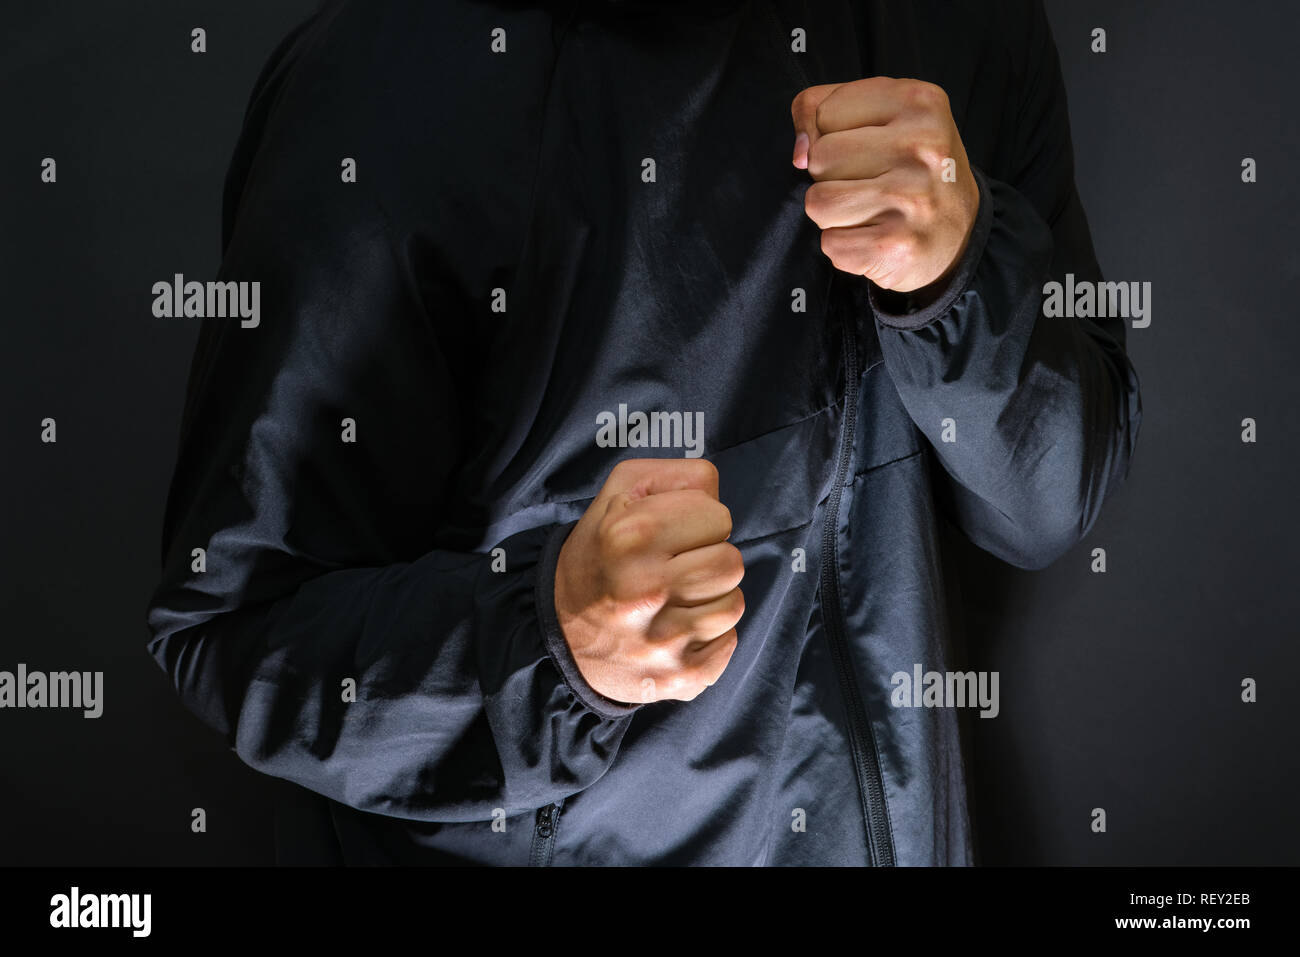 Violence and crime on the streets, digital glitch effect, victim is punched and mugged by aggressive violent man in hooded jacket, cctv security camer - Stock Image